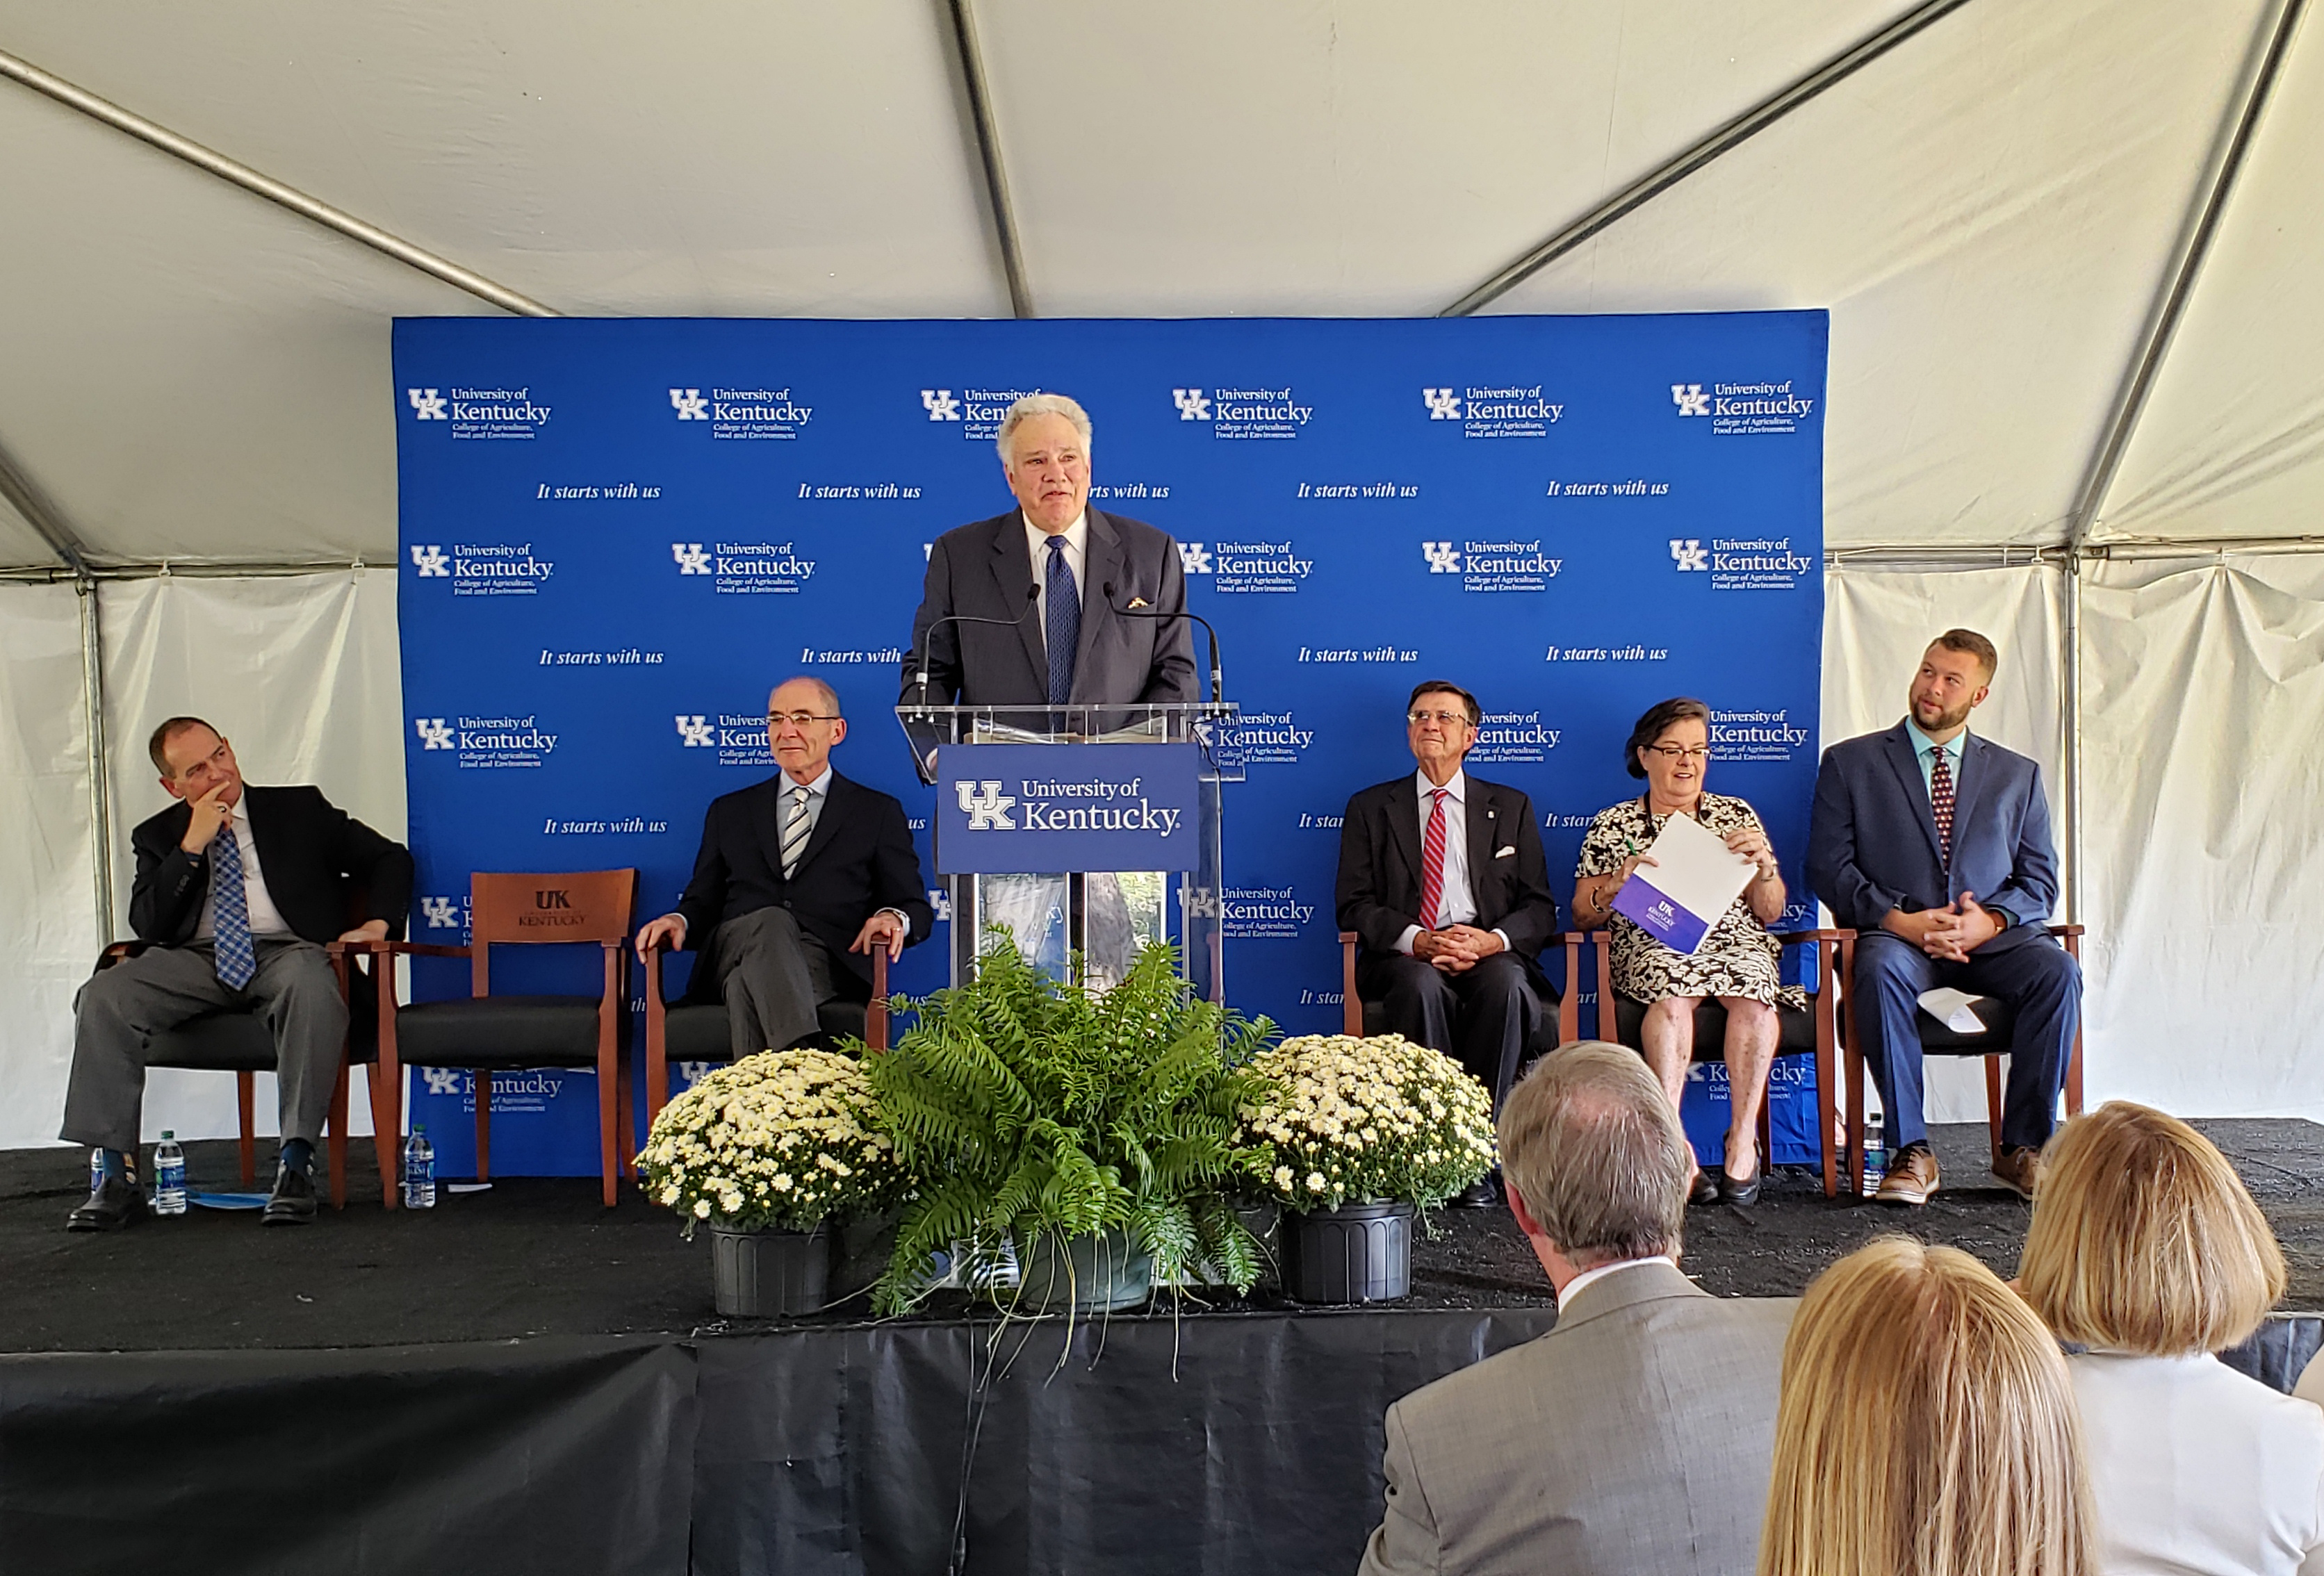 UK College of Agriculture, Food and Environment celebrates renovation of historic home, formation of James B. Beam Institute for Kentucky Spirits